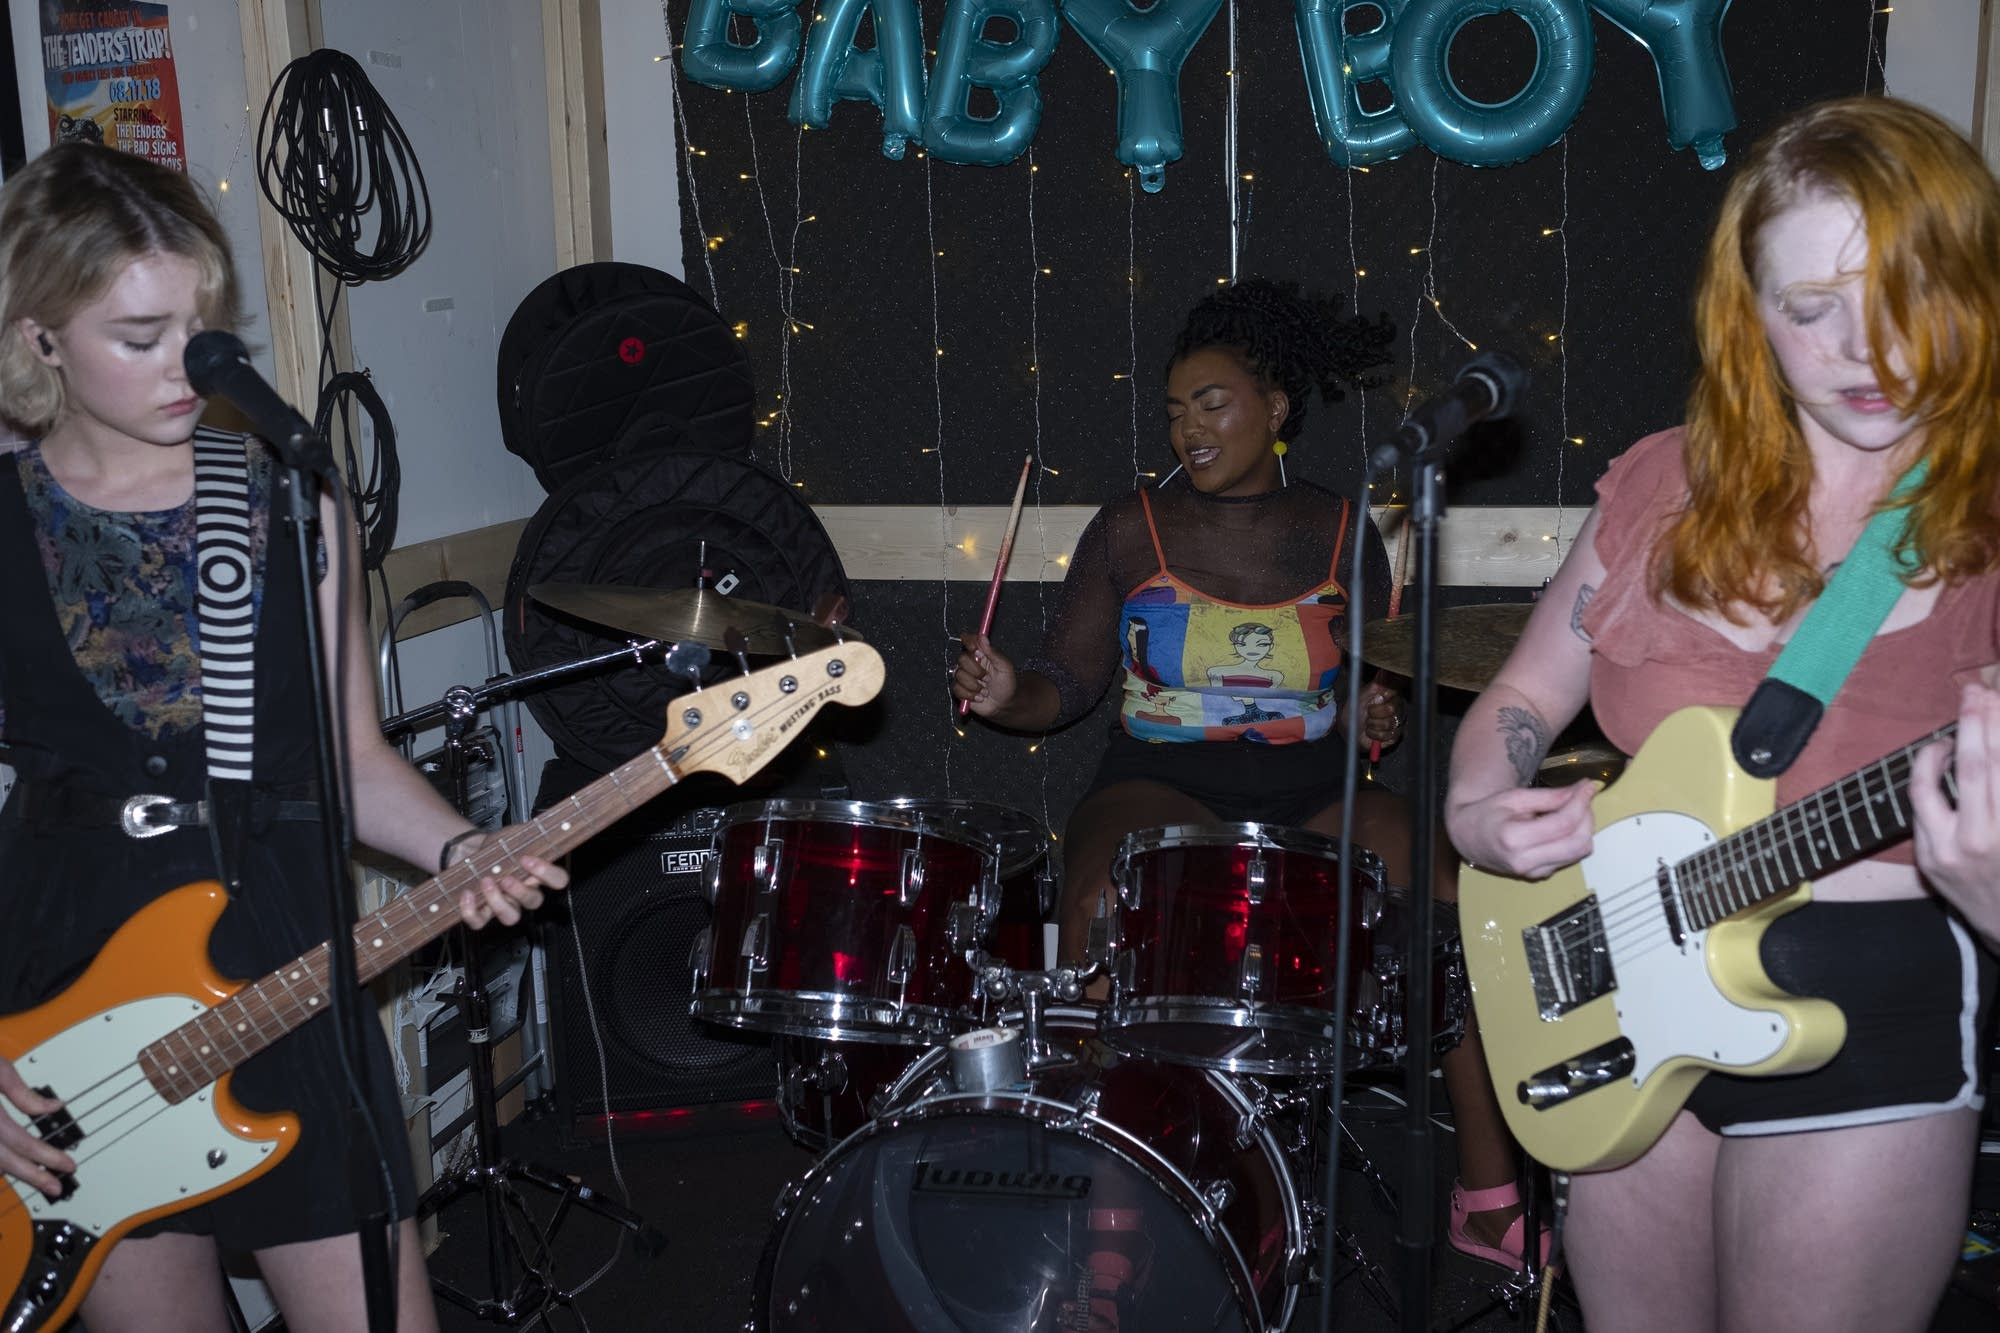 Three people in a band practice.